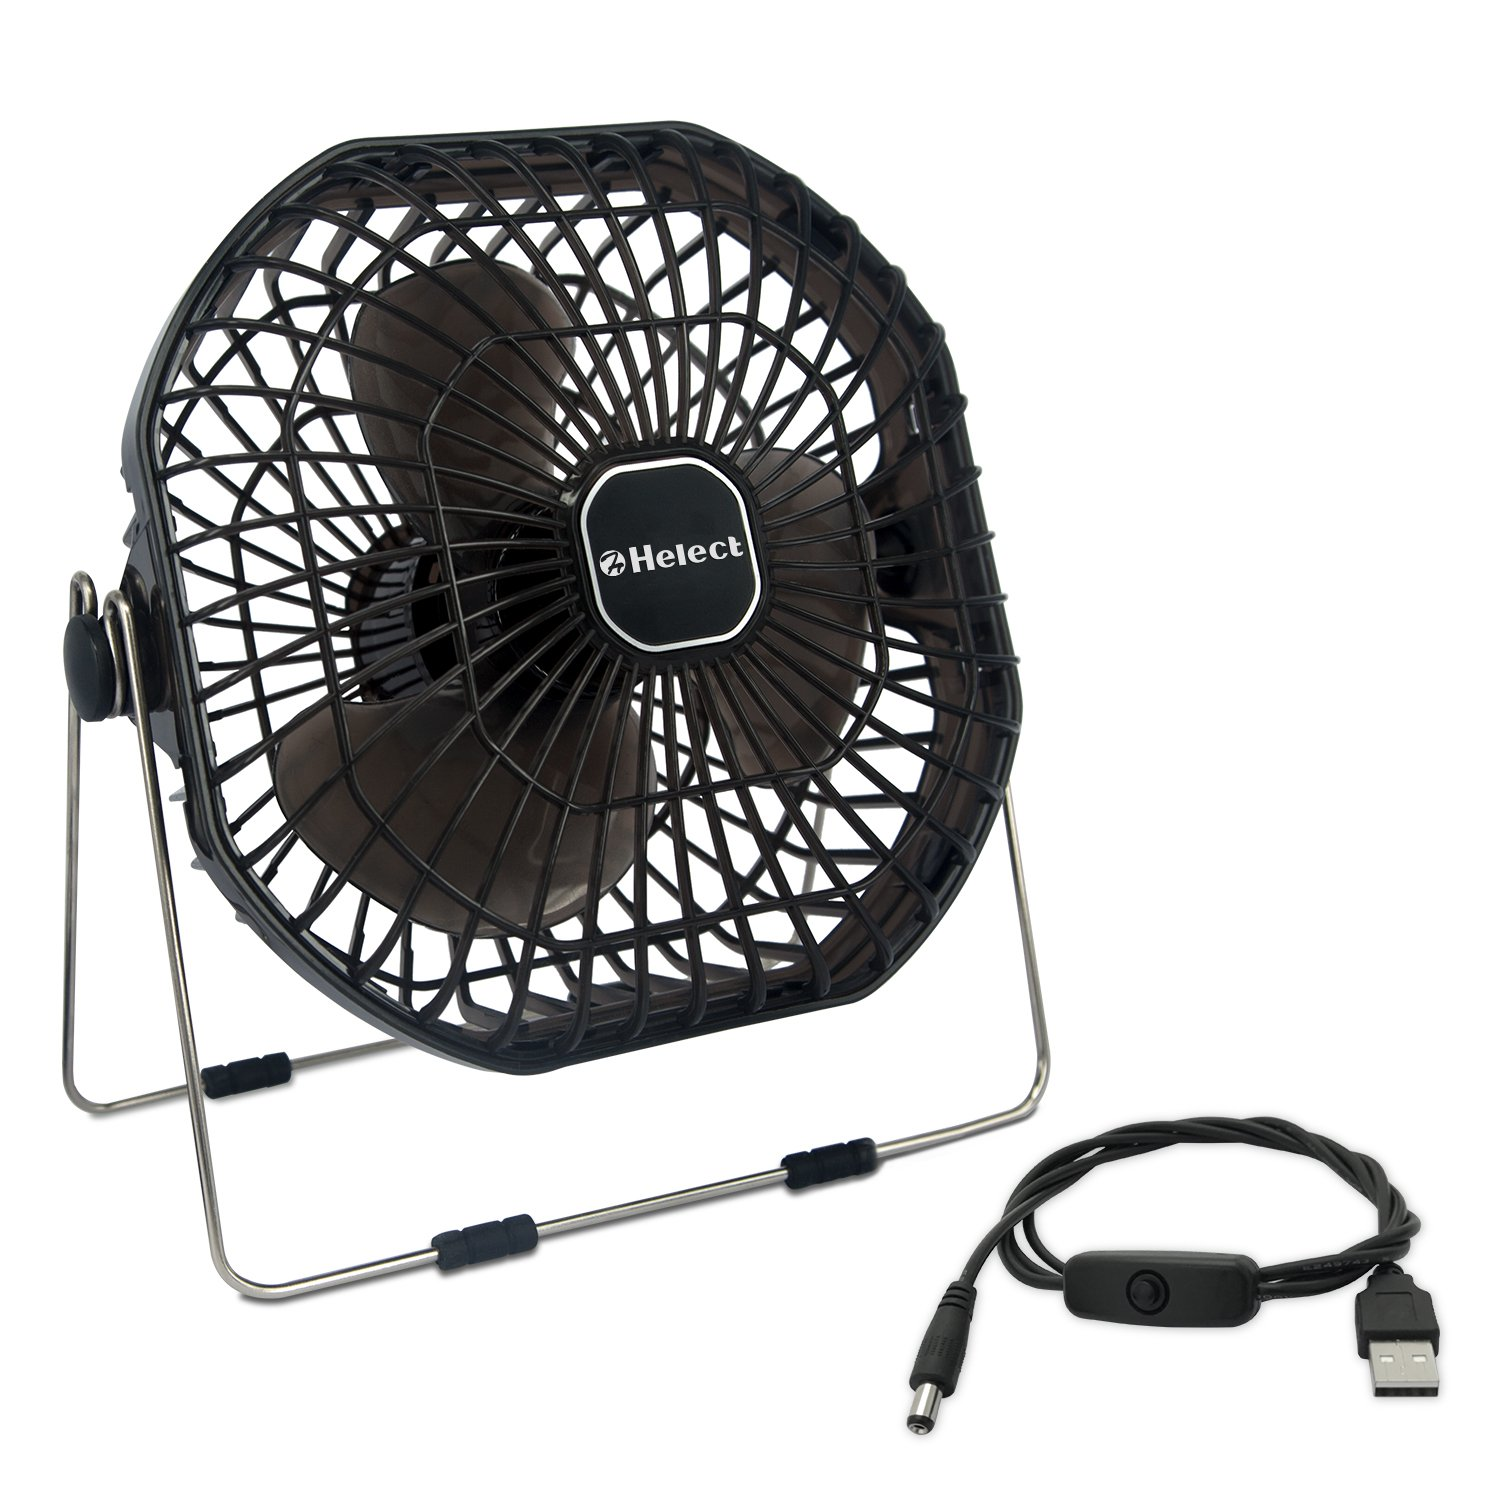 USB Fan, Helect 7-Inch Frame Mini USB Table Desk Personal Fan Quiet Rotatable (Black) - H1055